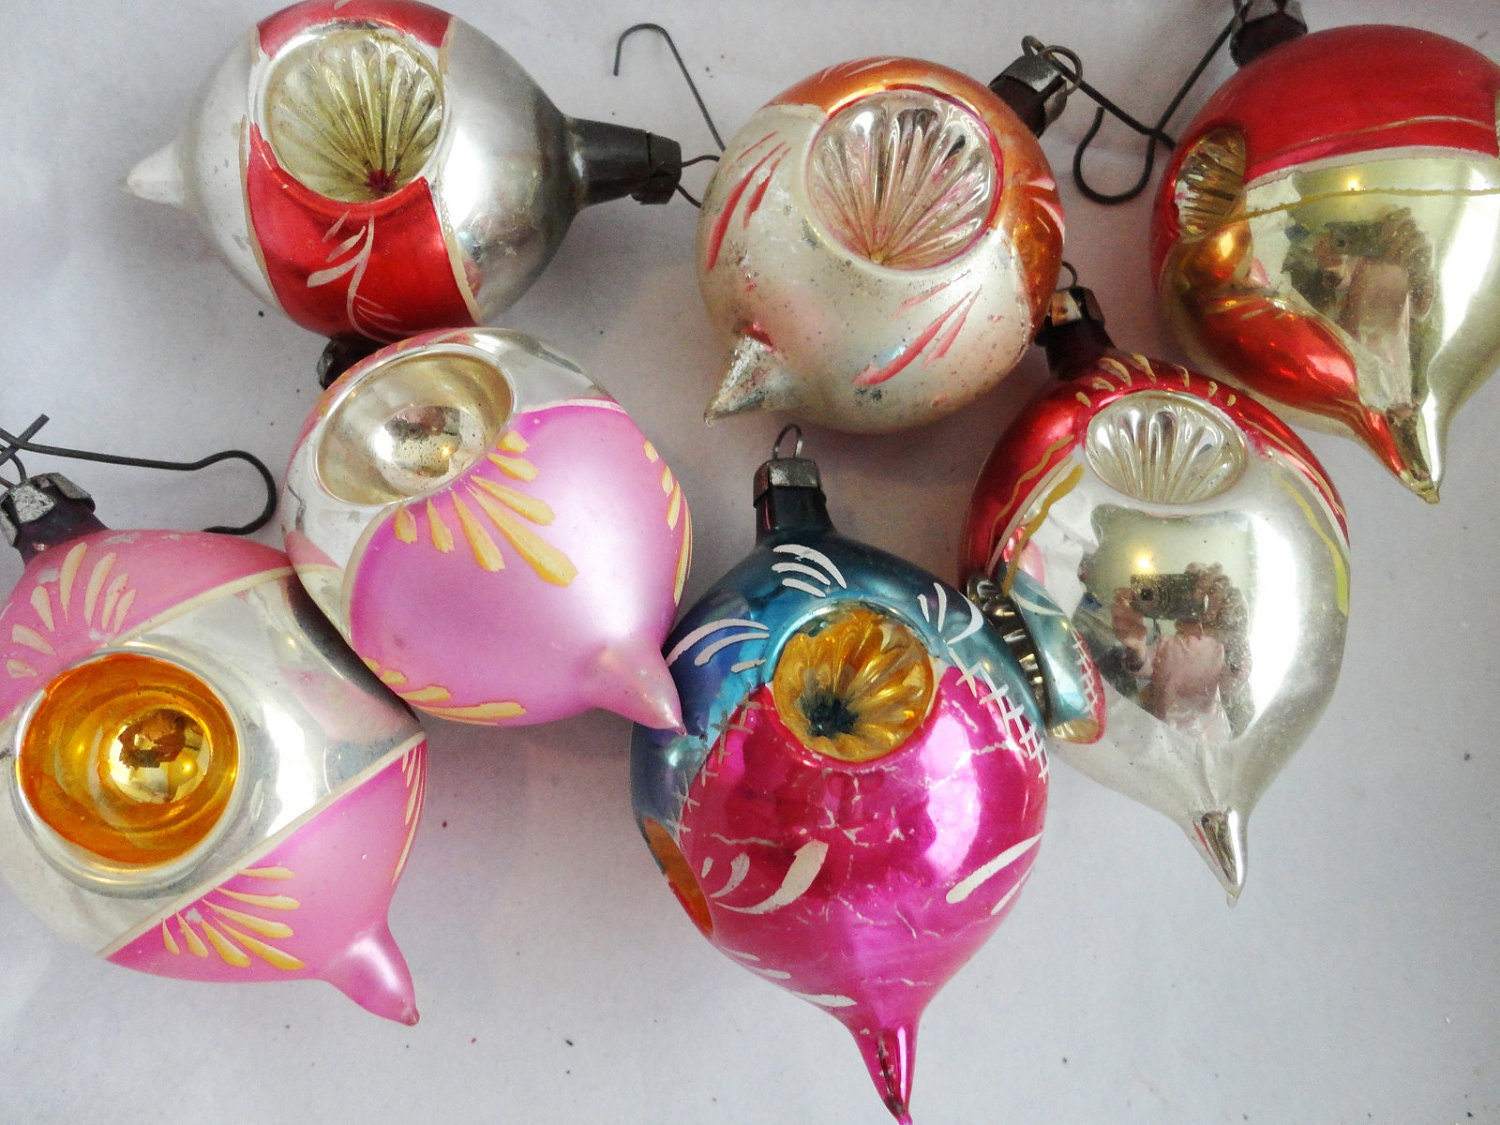 Clearance sale 7 vintage mercury glass christmas ornaments for Christmas decorations clearance